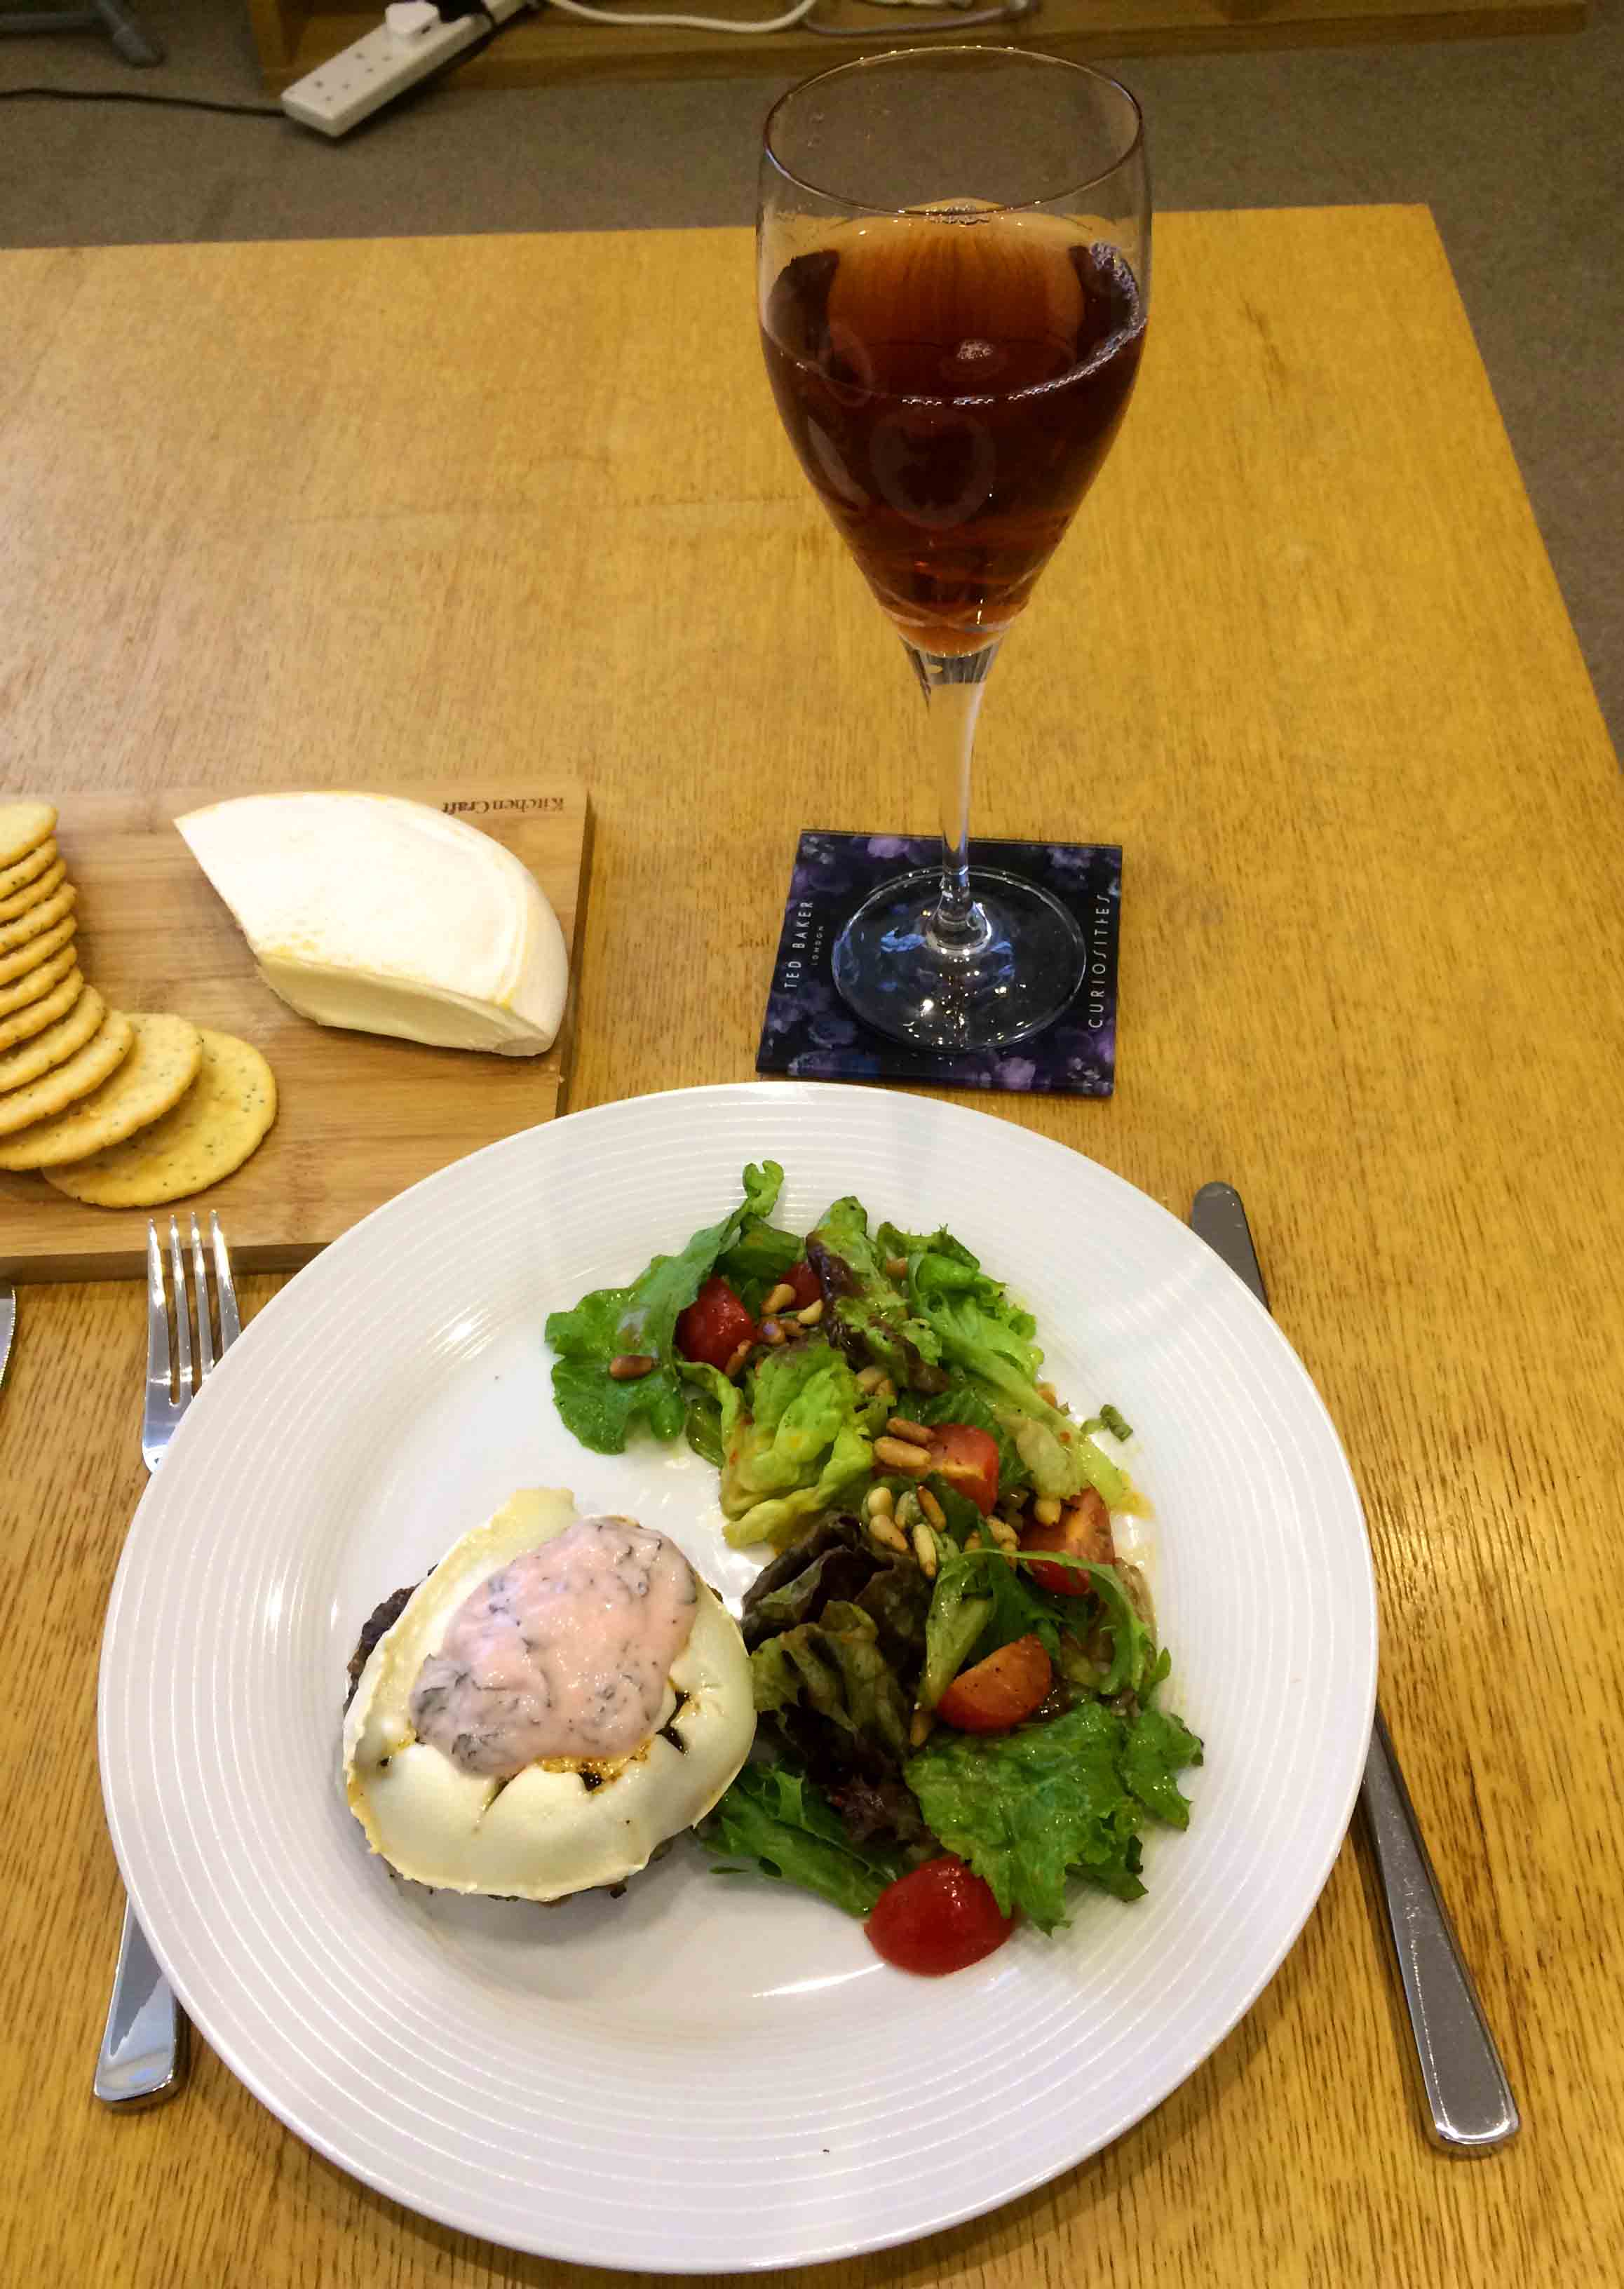 Lamb burger with goats cheese and side salad. With a glass of Ribena Winter Spice.